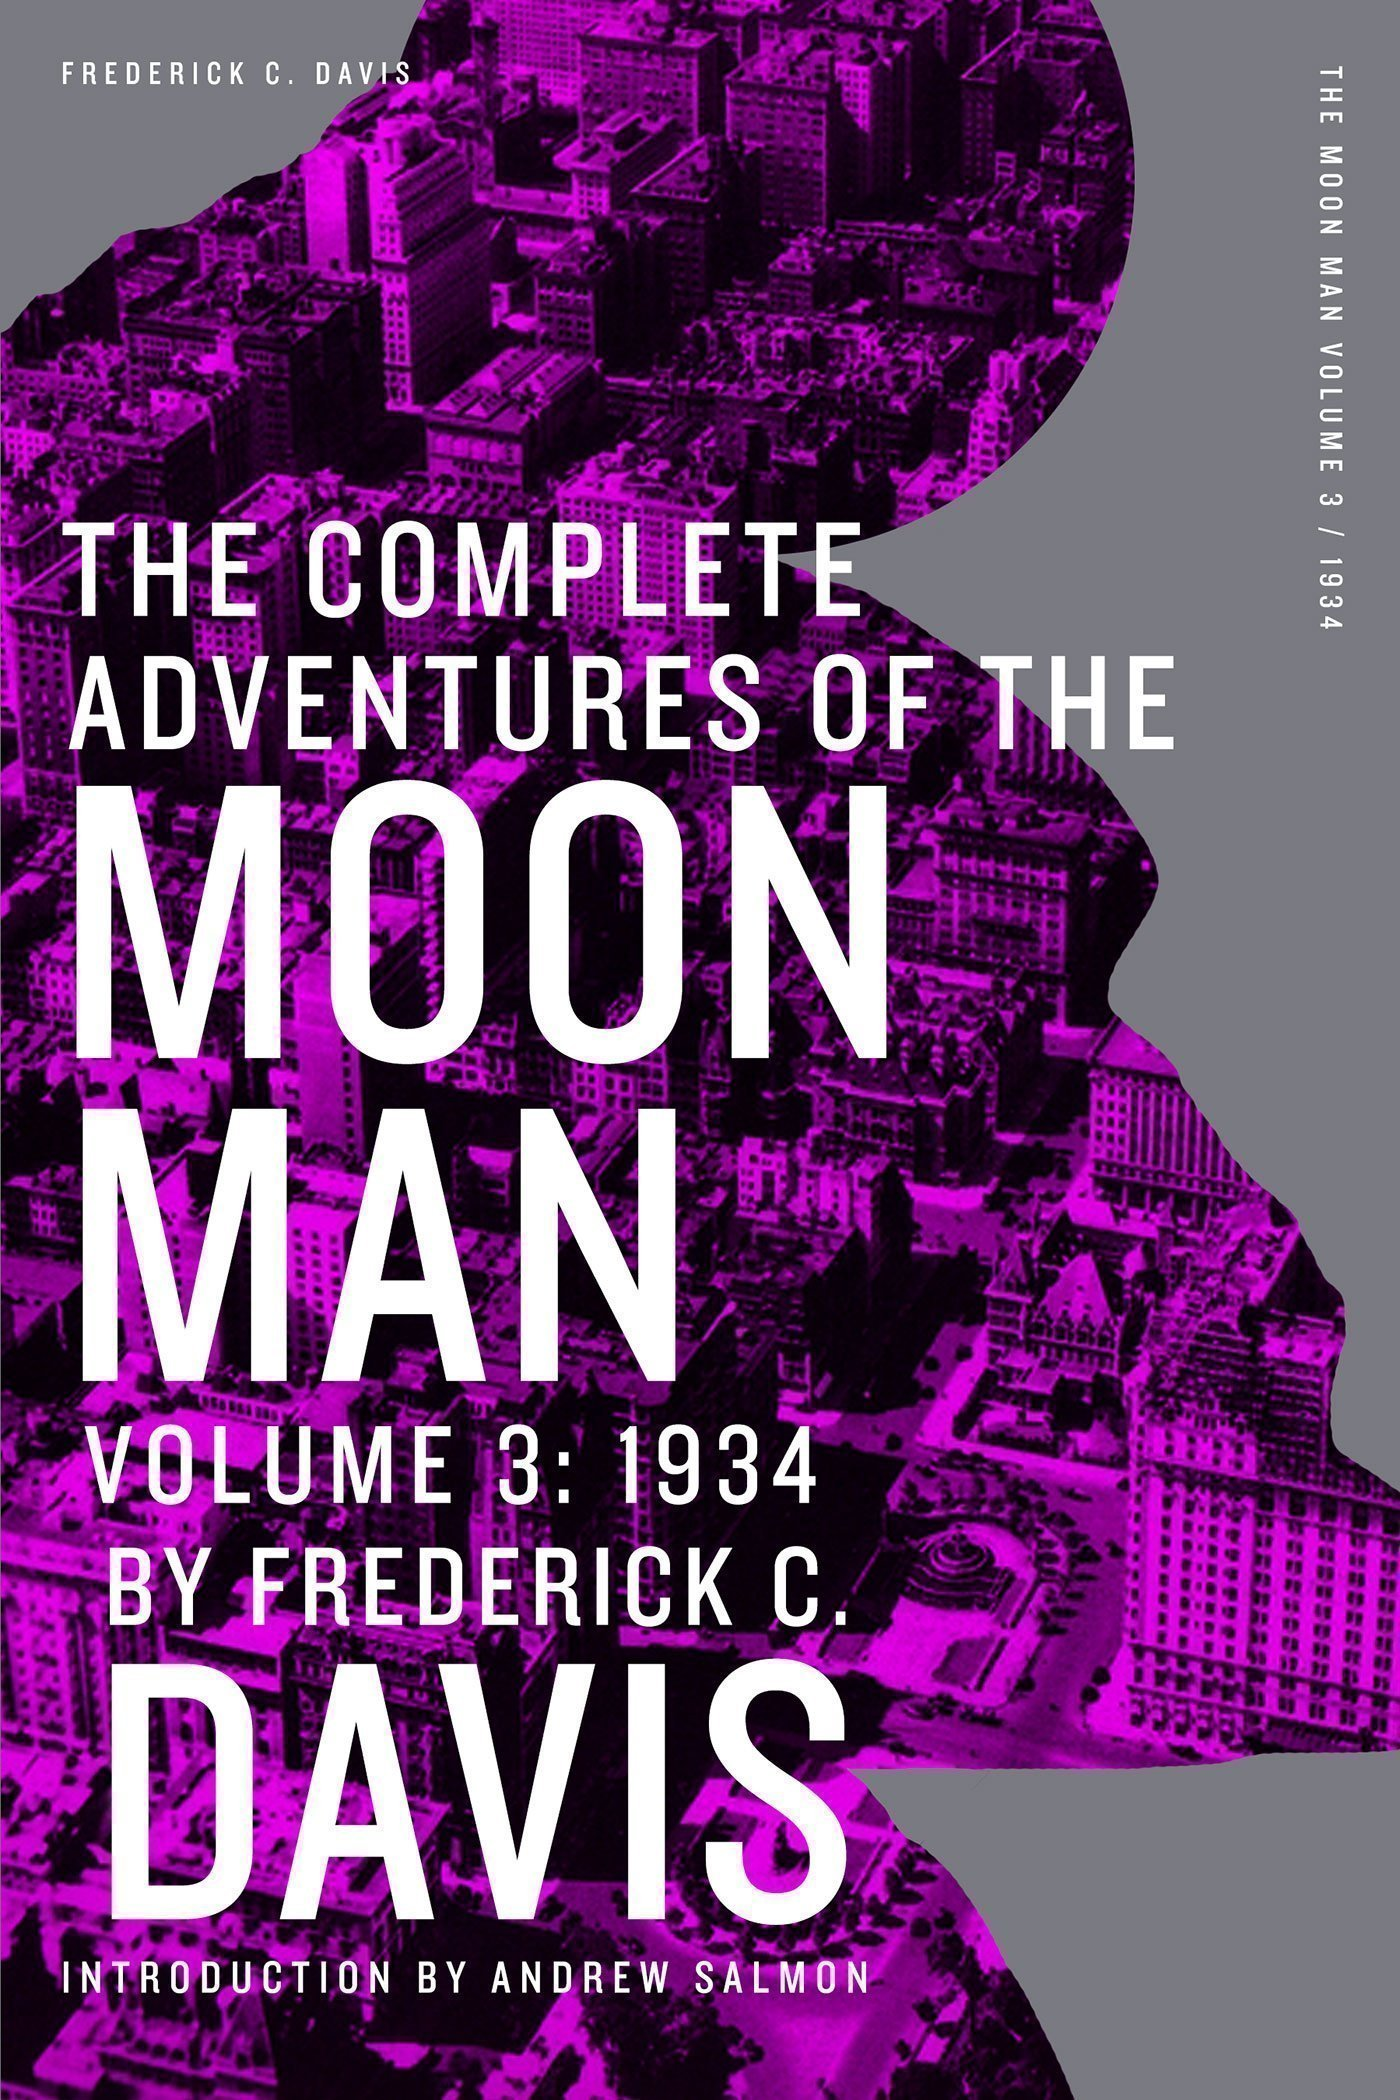 The Complete Adventures of the Moon Man, Volume 3: 1934